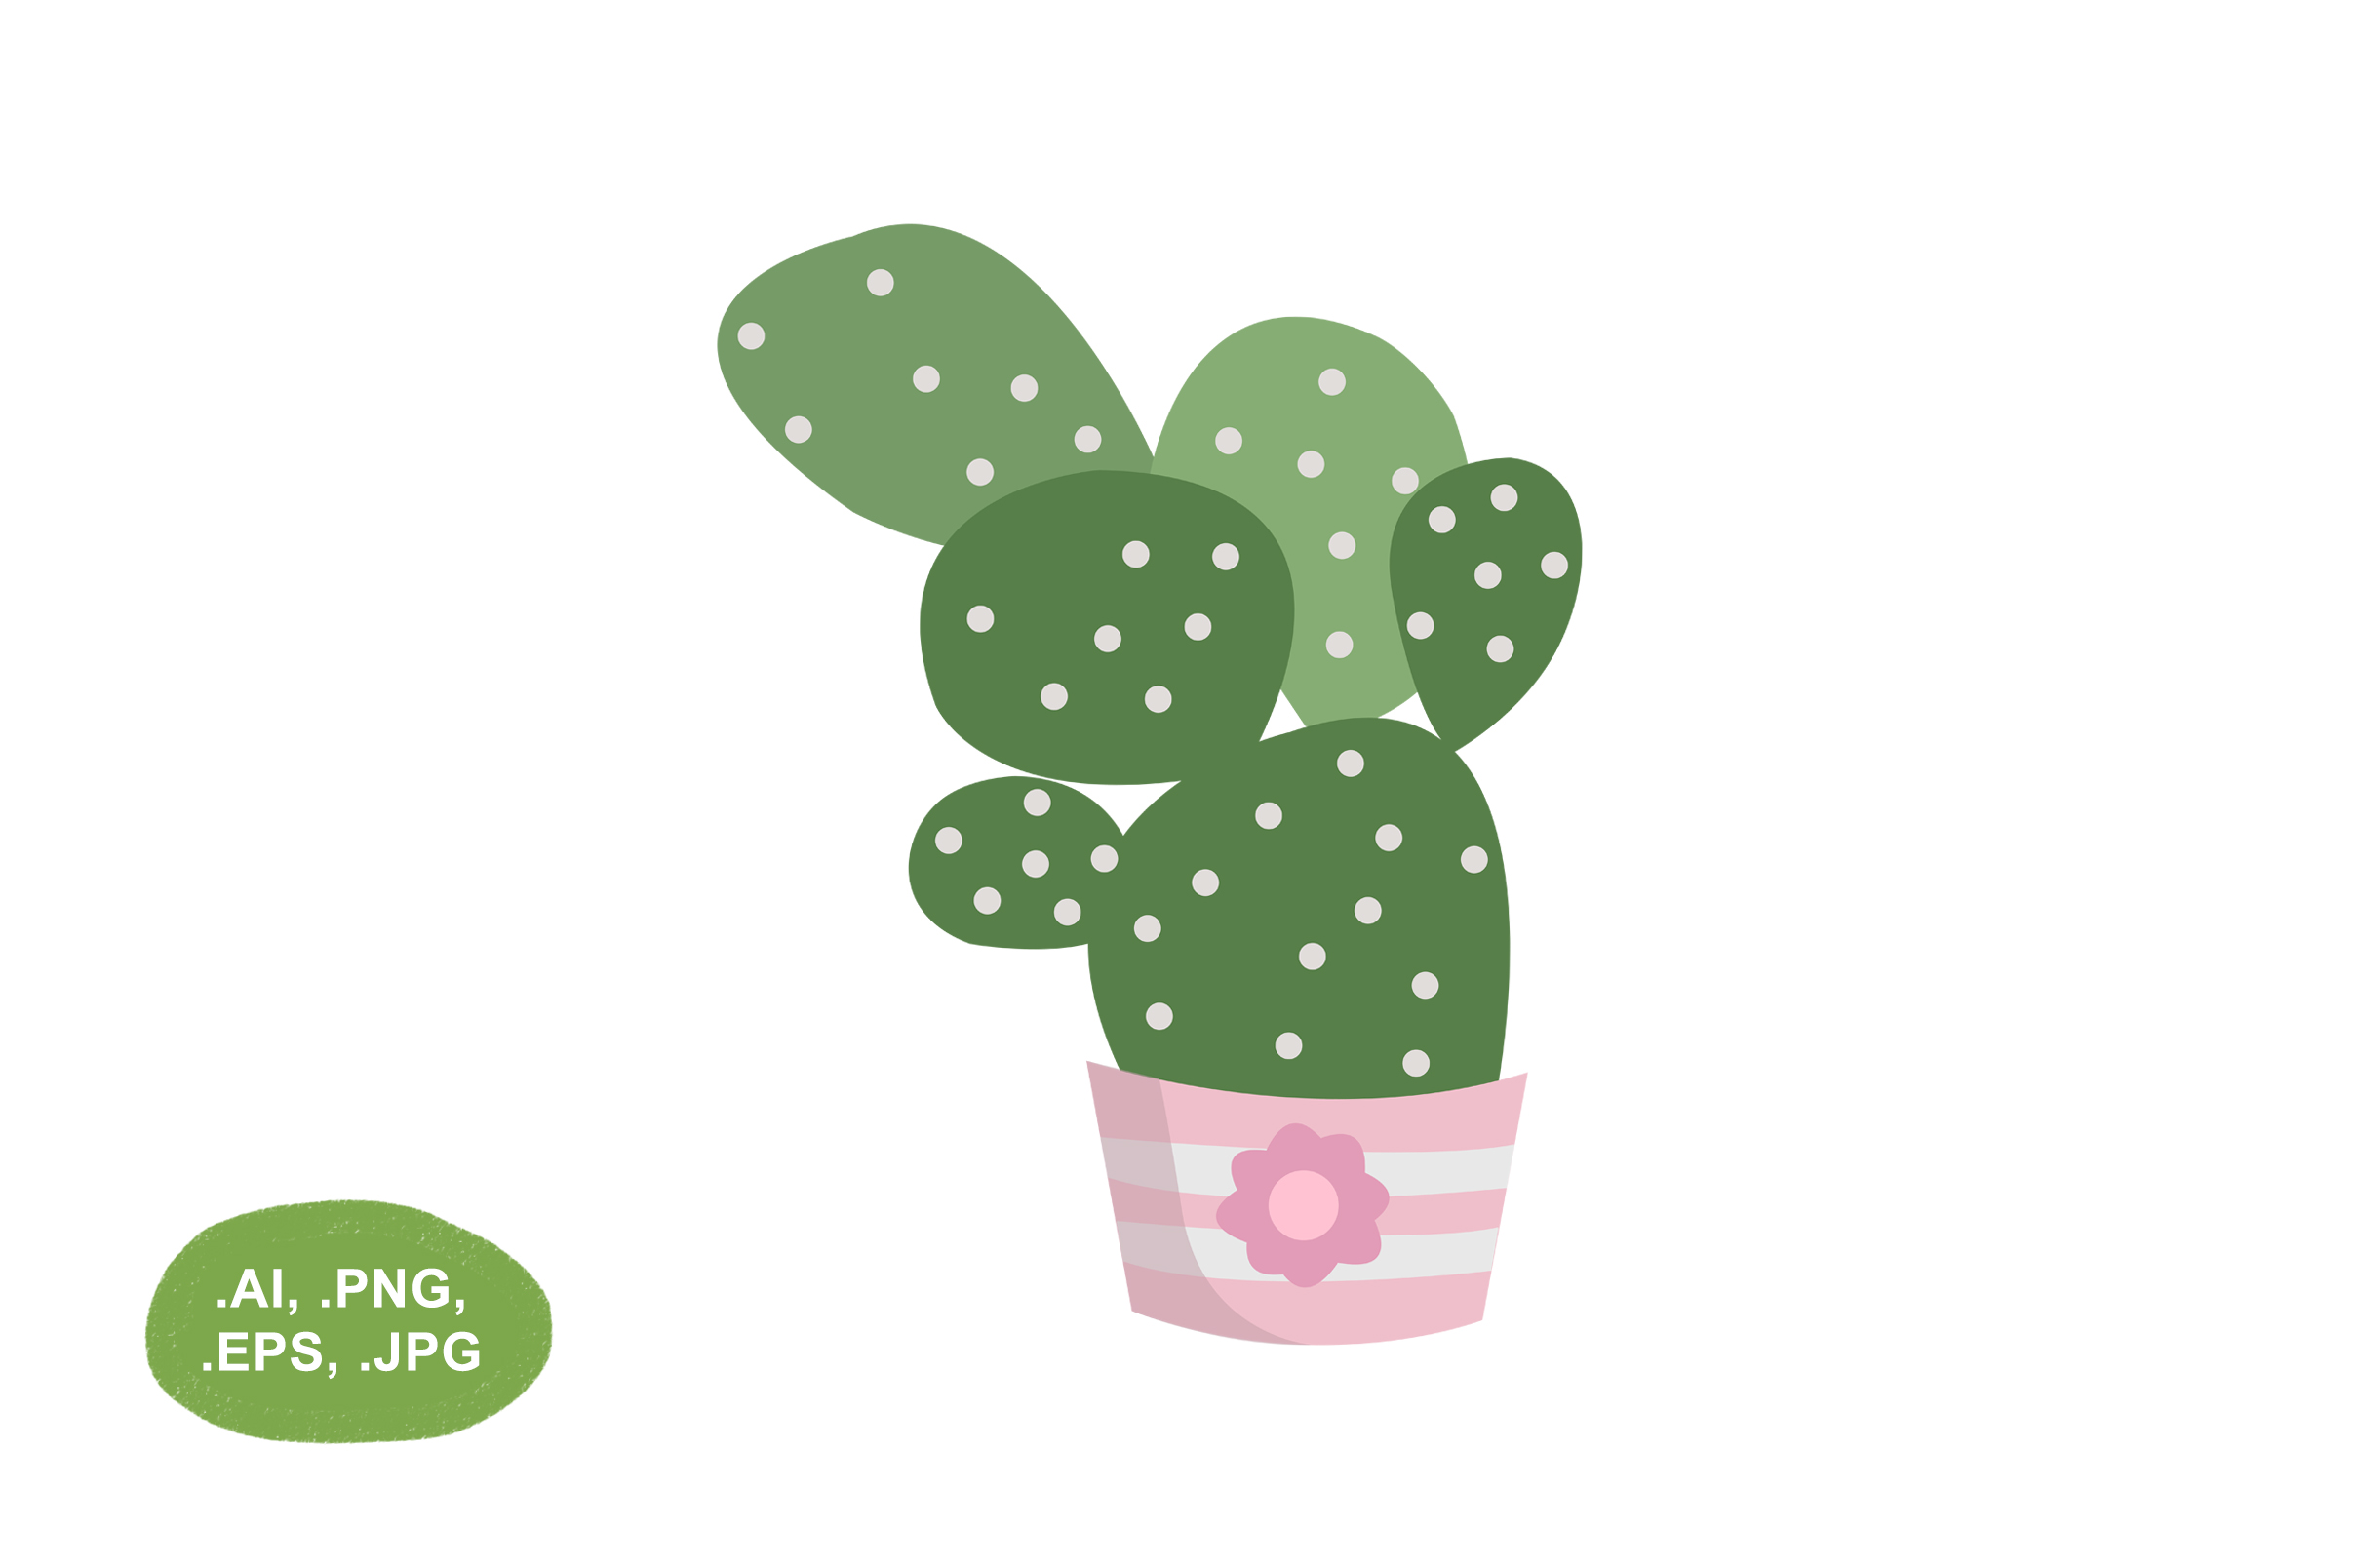 Download Free Botanical Cactus Vector Illustration Graphic By Salfiart for Cricut Explore, Silhouette and other cutting machines.